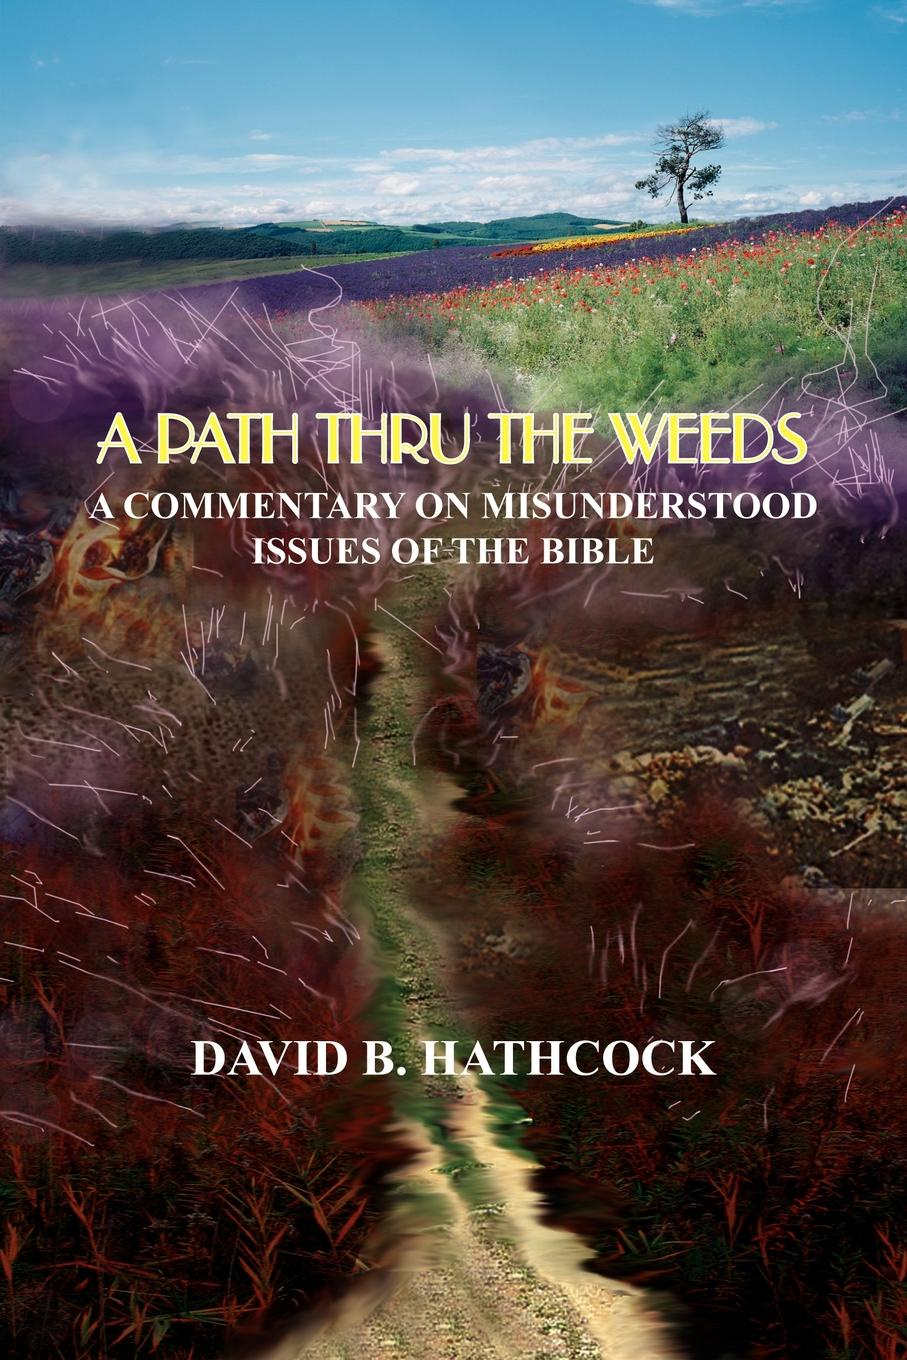 David B. Hathcock A PATH THRU THE WEEDS. A COMMENTARY ON MISUNDERSTOOD ISSUES OF THE BIBLE the misunderstood the misunderstood before the dream faded